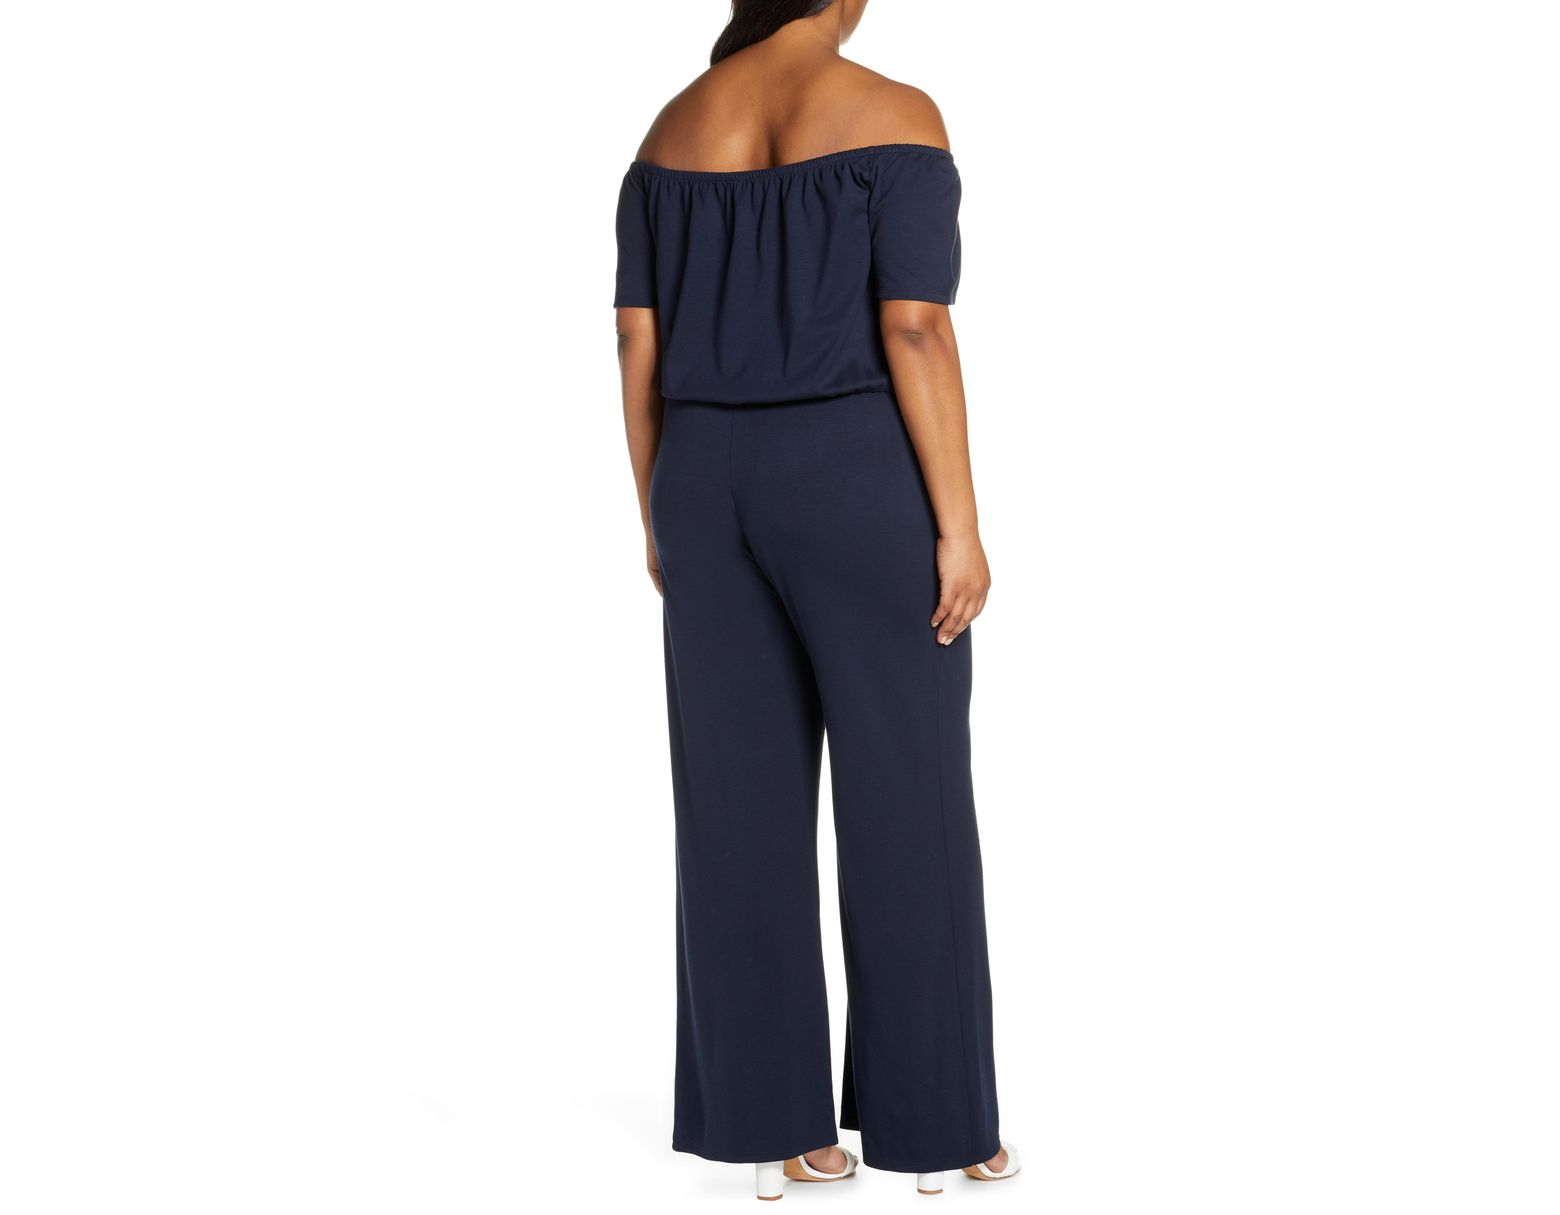 31f17f7ea1 Lyst - Gibson X Living In Yellow Iris Off The Shoulder Ponte Knit Jumpsuit  in Blue